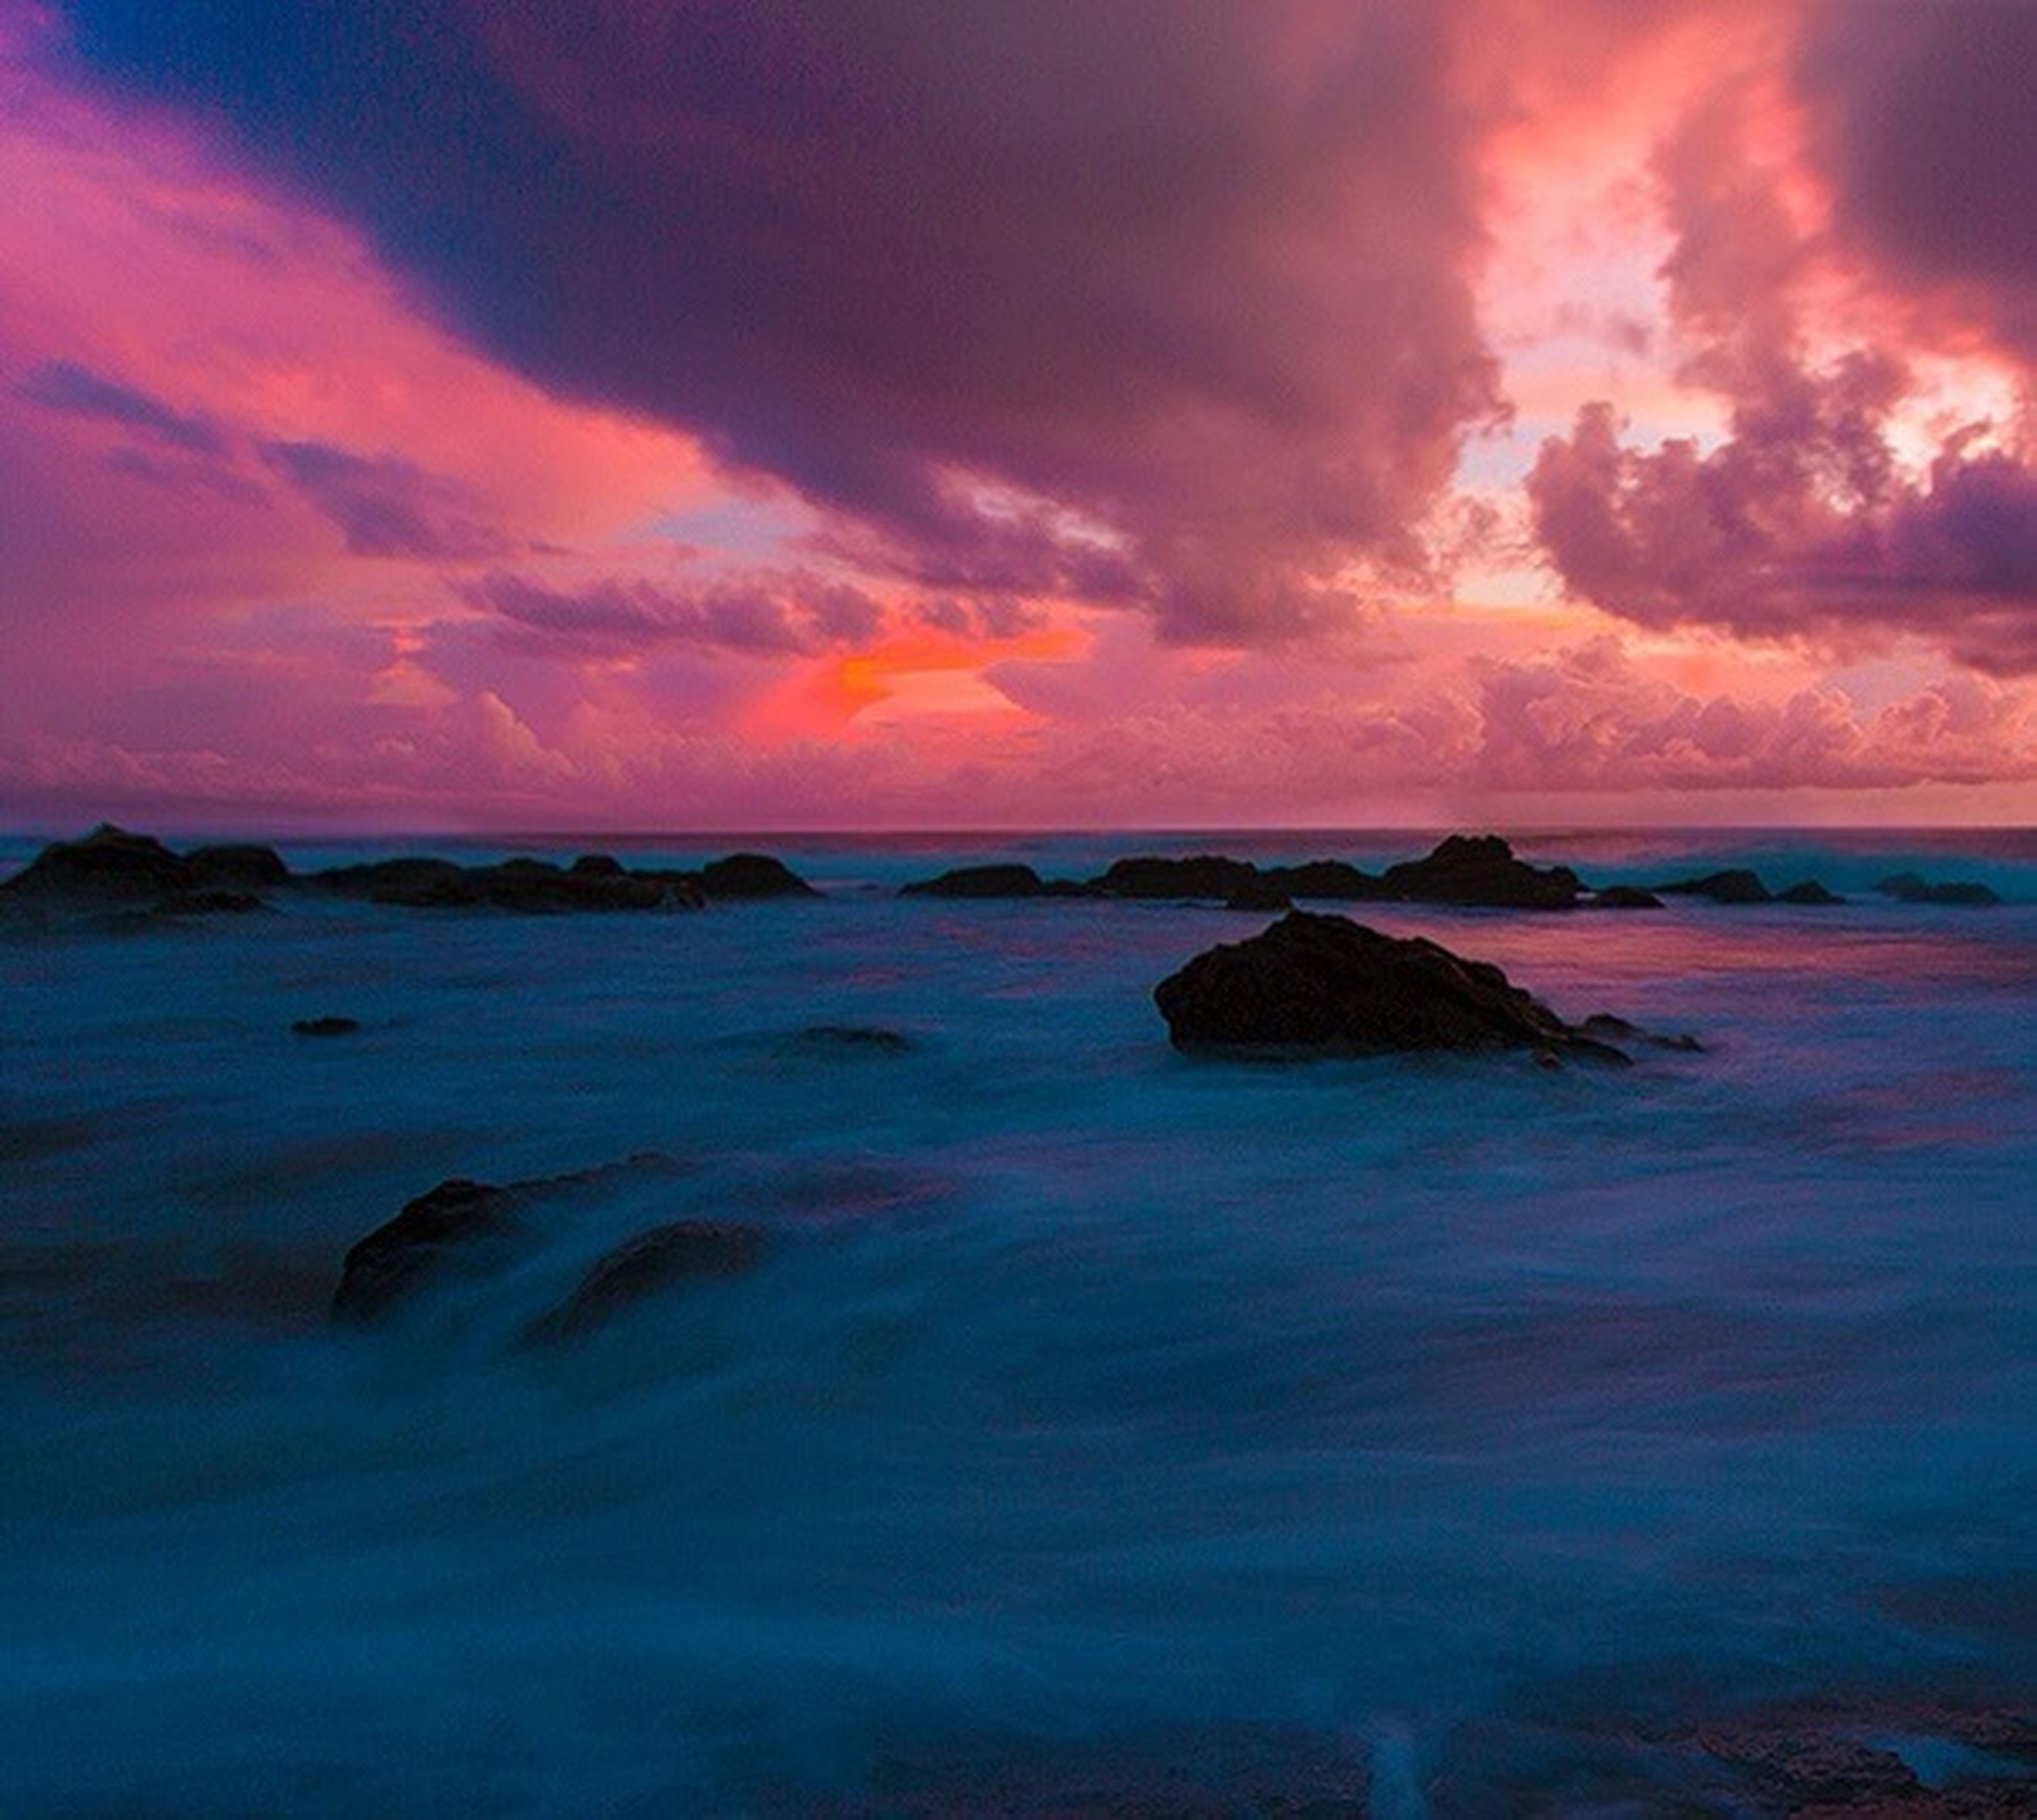 sea, water, sunset, scenics, sky, beauty in nature, horizon over water, tranquil scene, tranquility, cloud - sky, nature, idyllic, orange color, waterfront, dramatic sky, cloudy, rock - object, beach, cloud, dusk